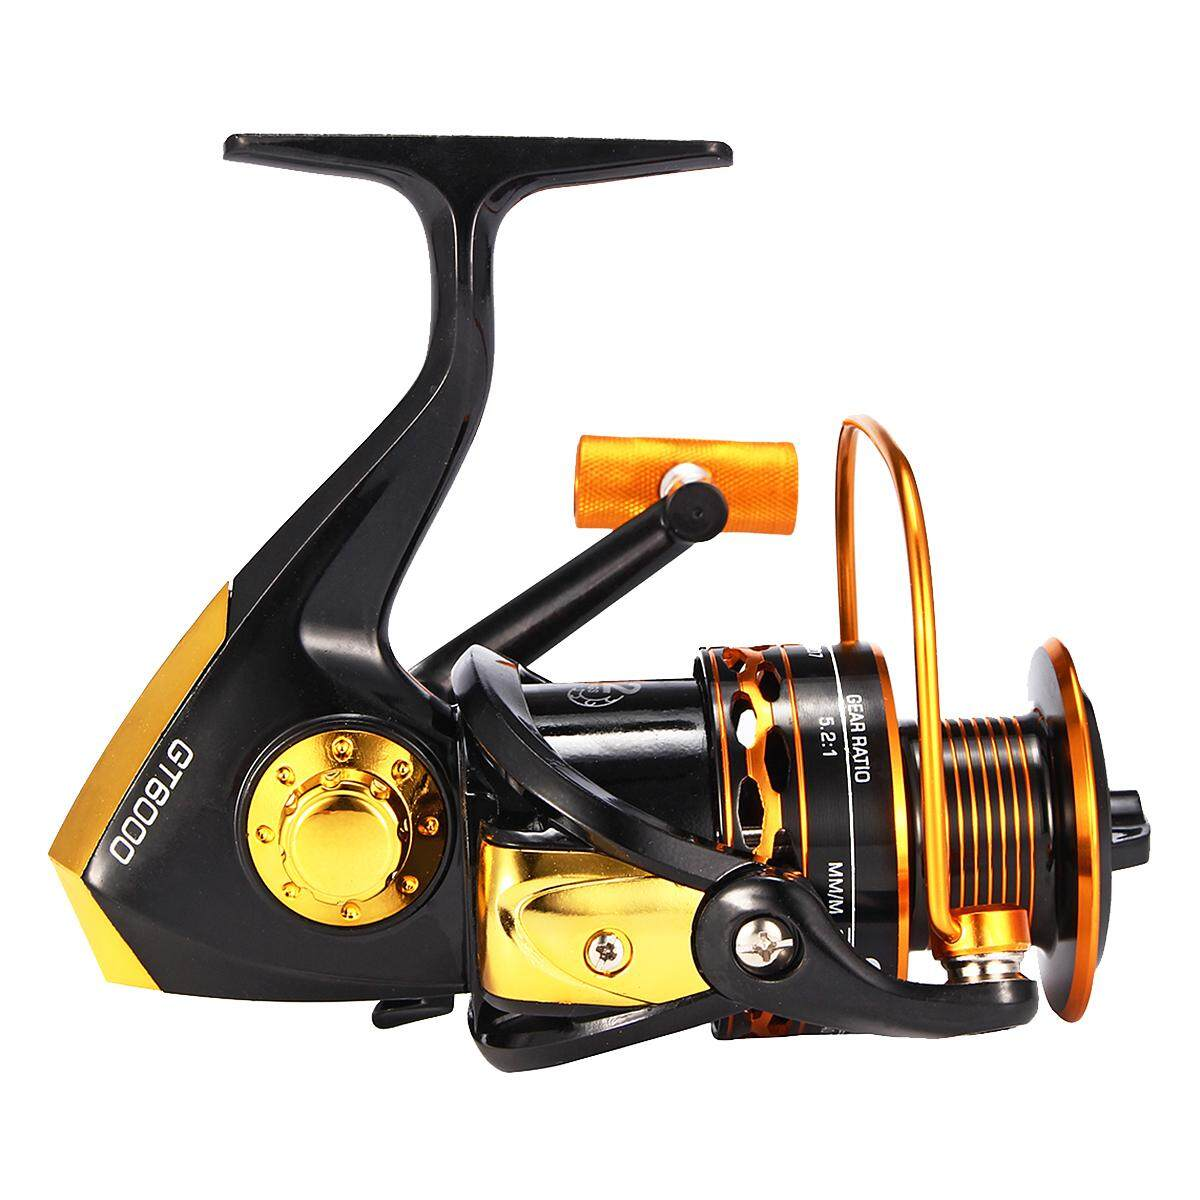 Ball Bearing Right Left Hand Freshwater Saltwater Fishing Spinning Reels # Model 5000